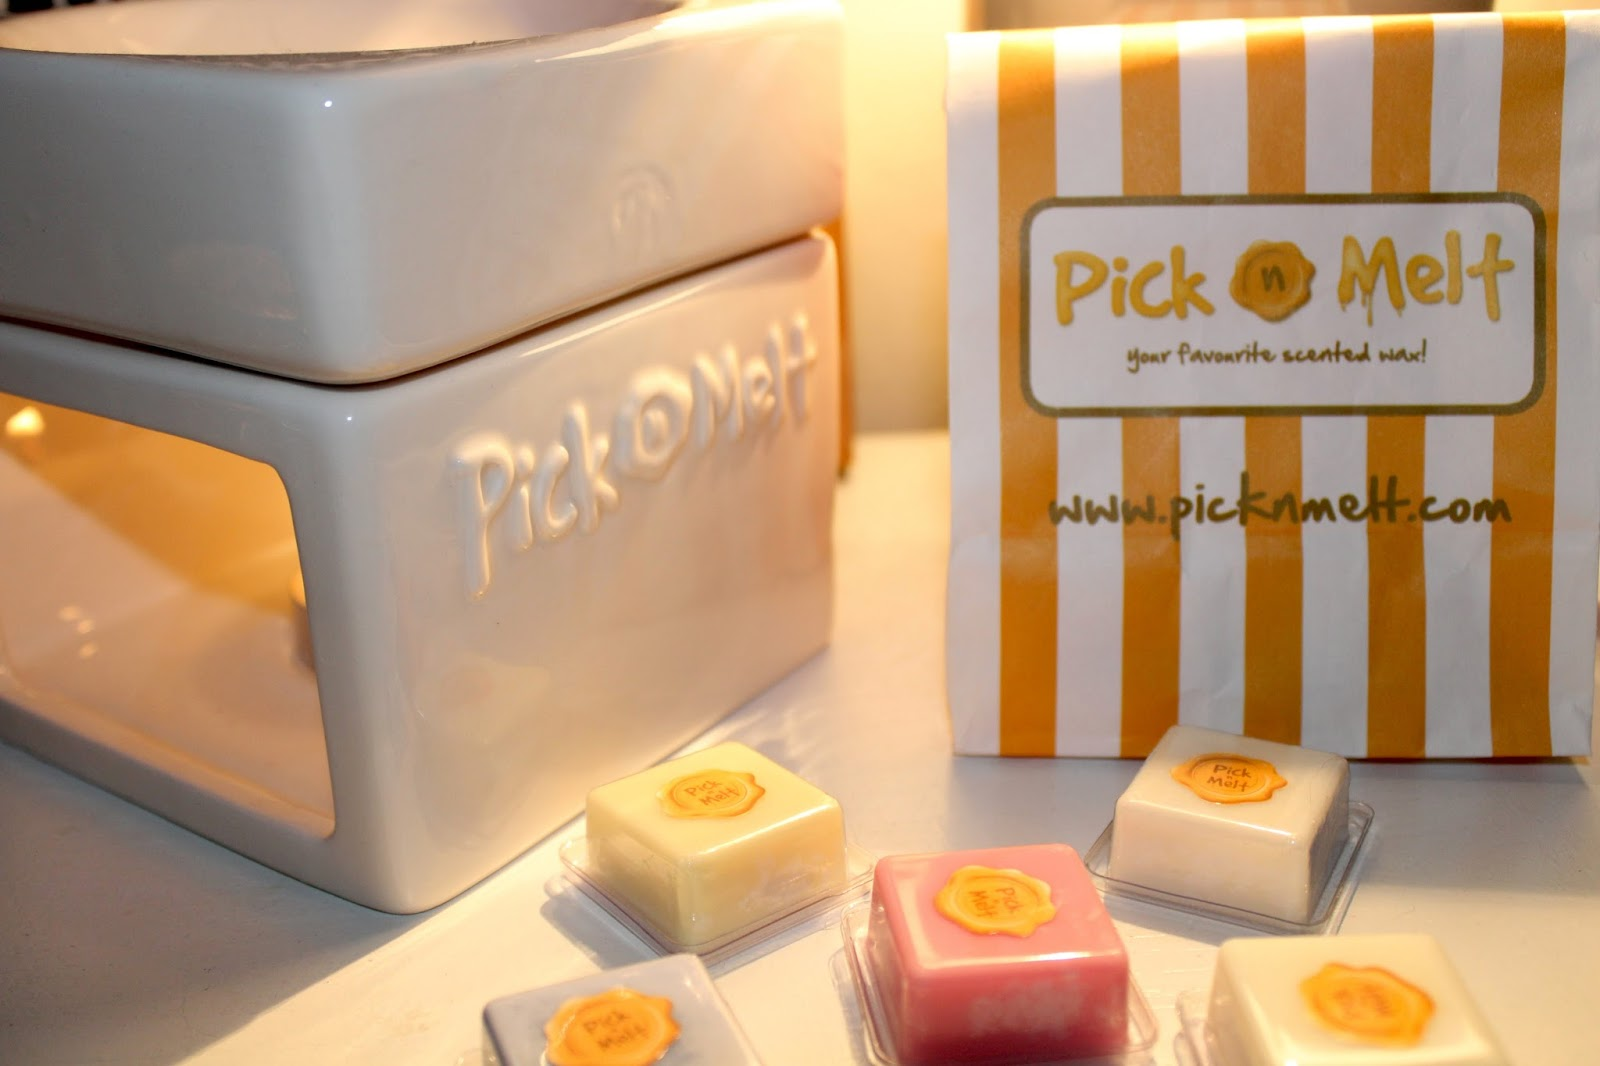 Pick 'n Melt Wax Melts